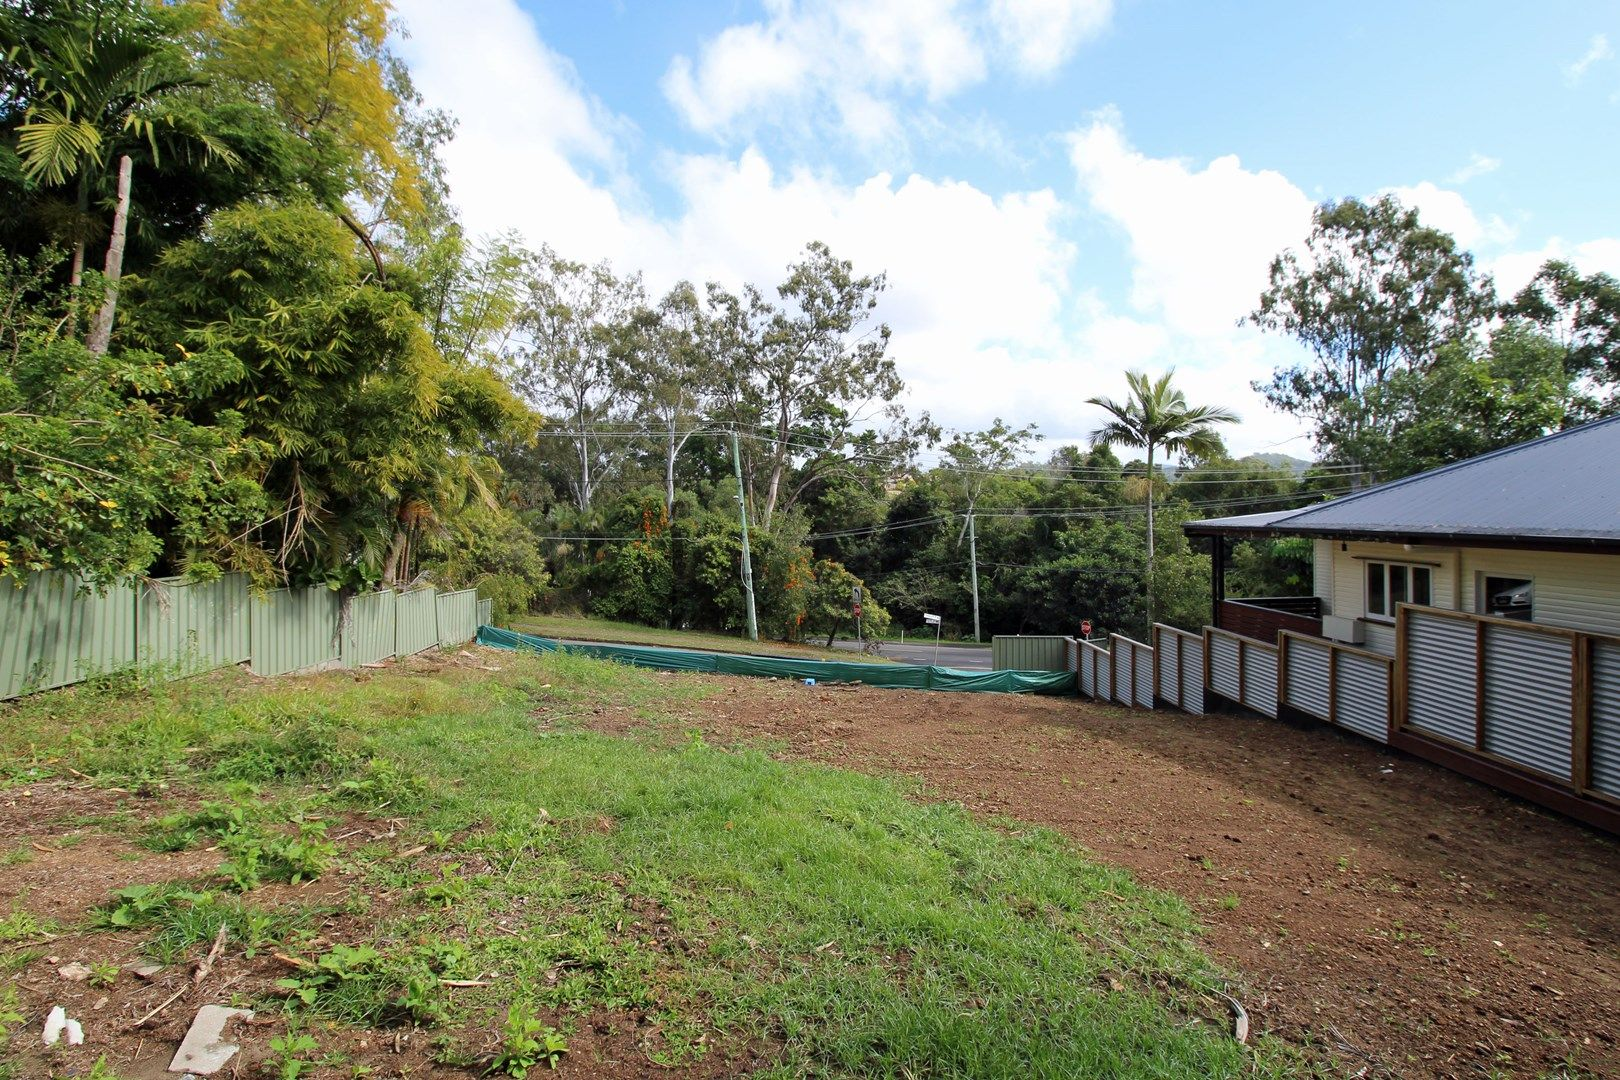 2A D'Aguilar Road, The Gap QLD 4061, Image 0